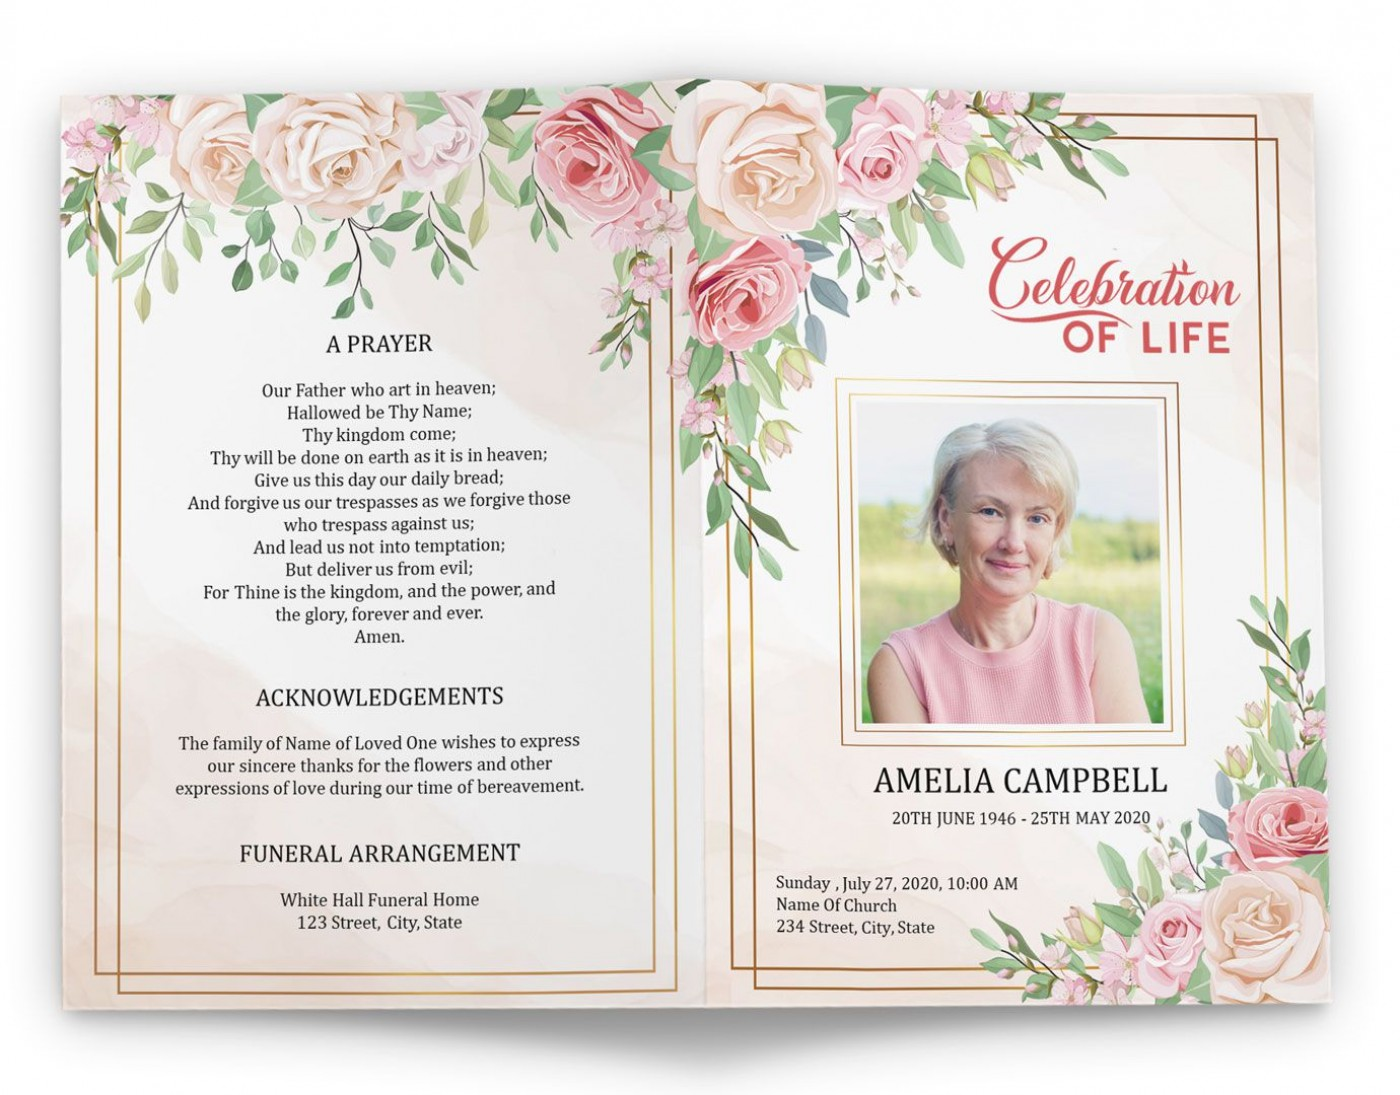 005 Magnificent Free Printable Celebration Of Life Program Template Highest Quality 1400